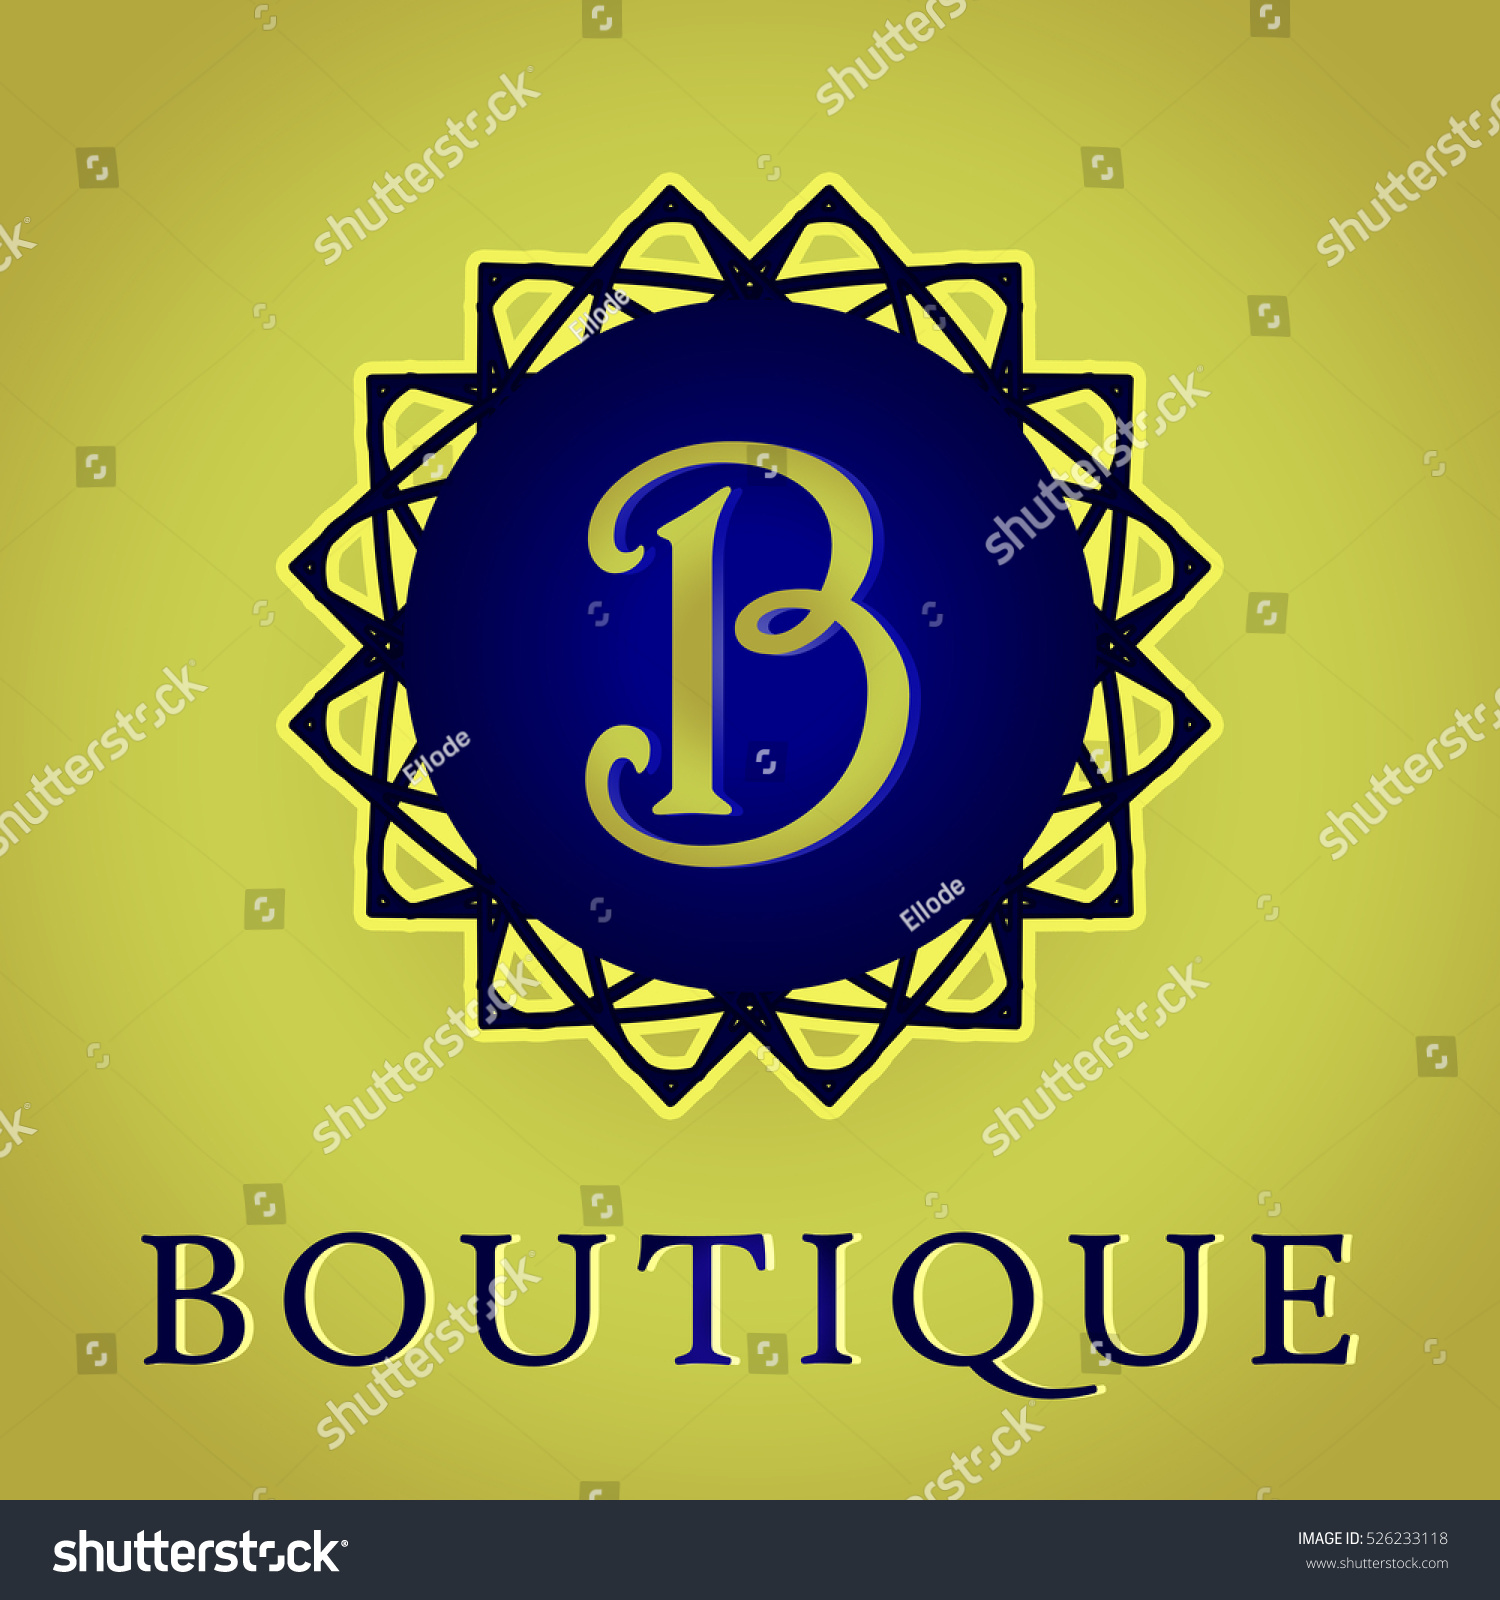 Boutique hotel and spa logo design stock photo 526233118 for Boutique hotel logo